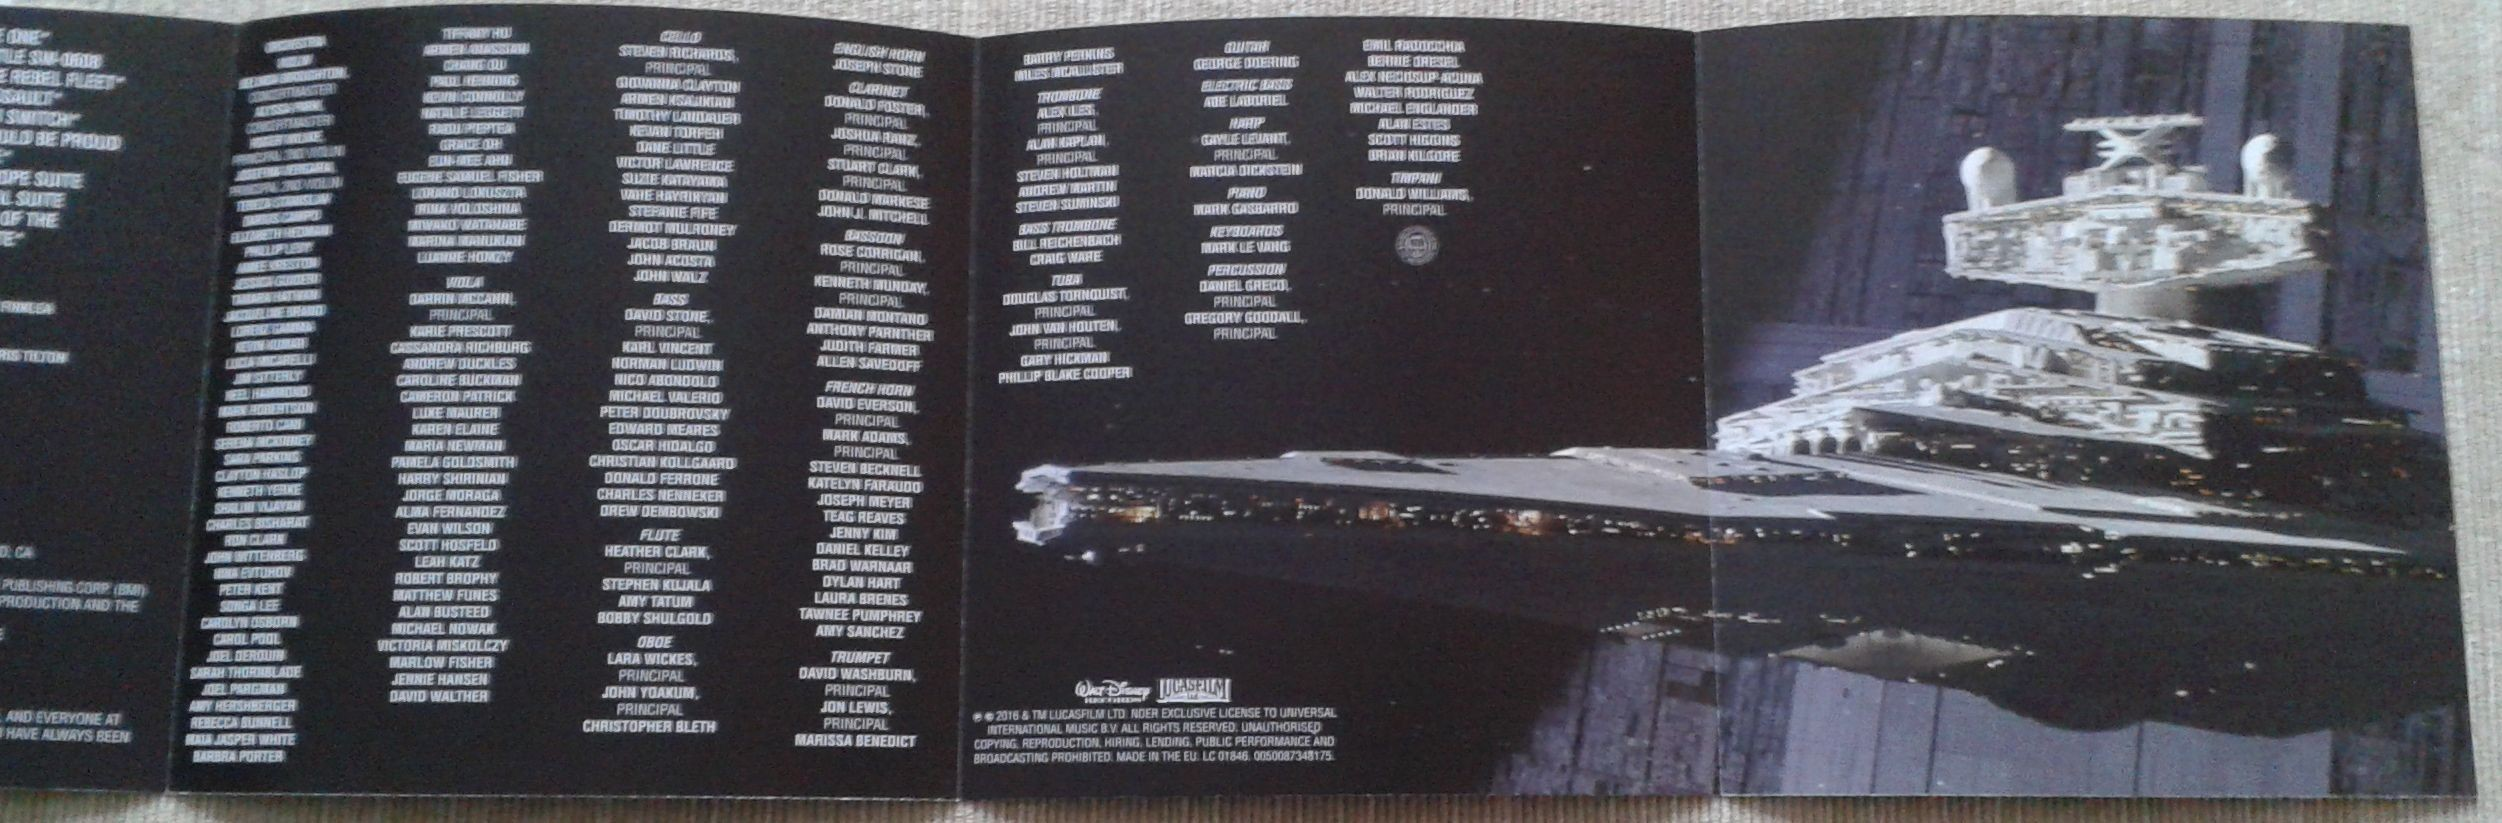 6. Rogue 1 SW booklet 2.jpg